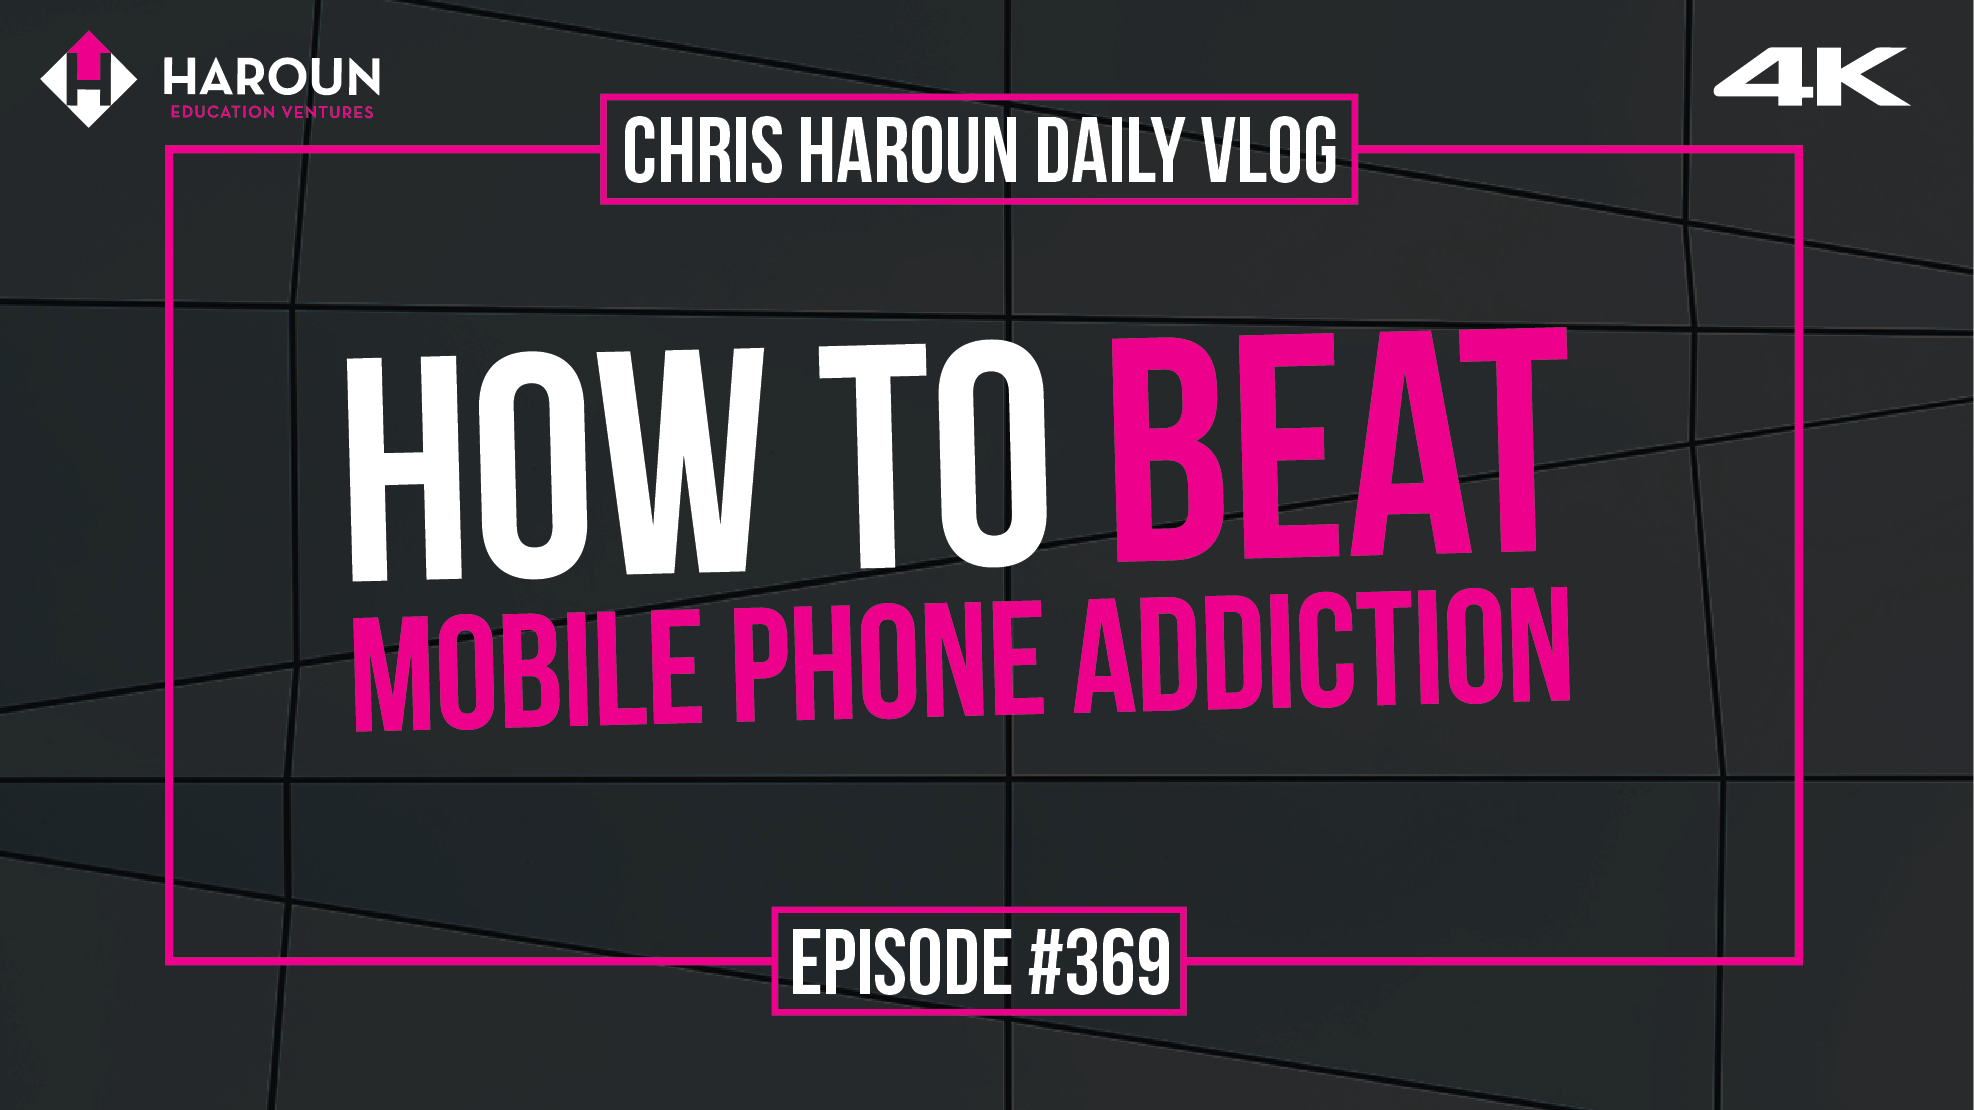 VLOG_369_8_4_2019_How to Beat Mobile Phone Addiction.png